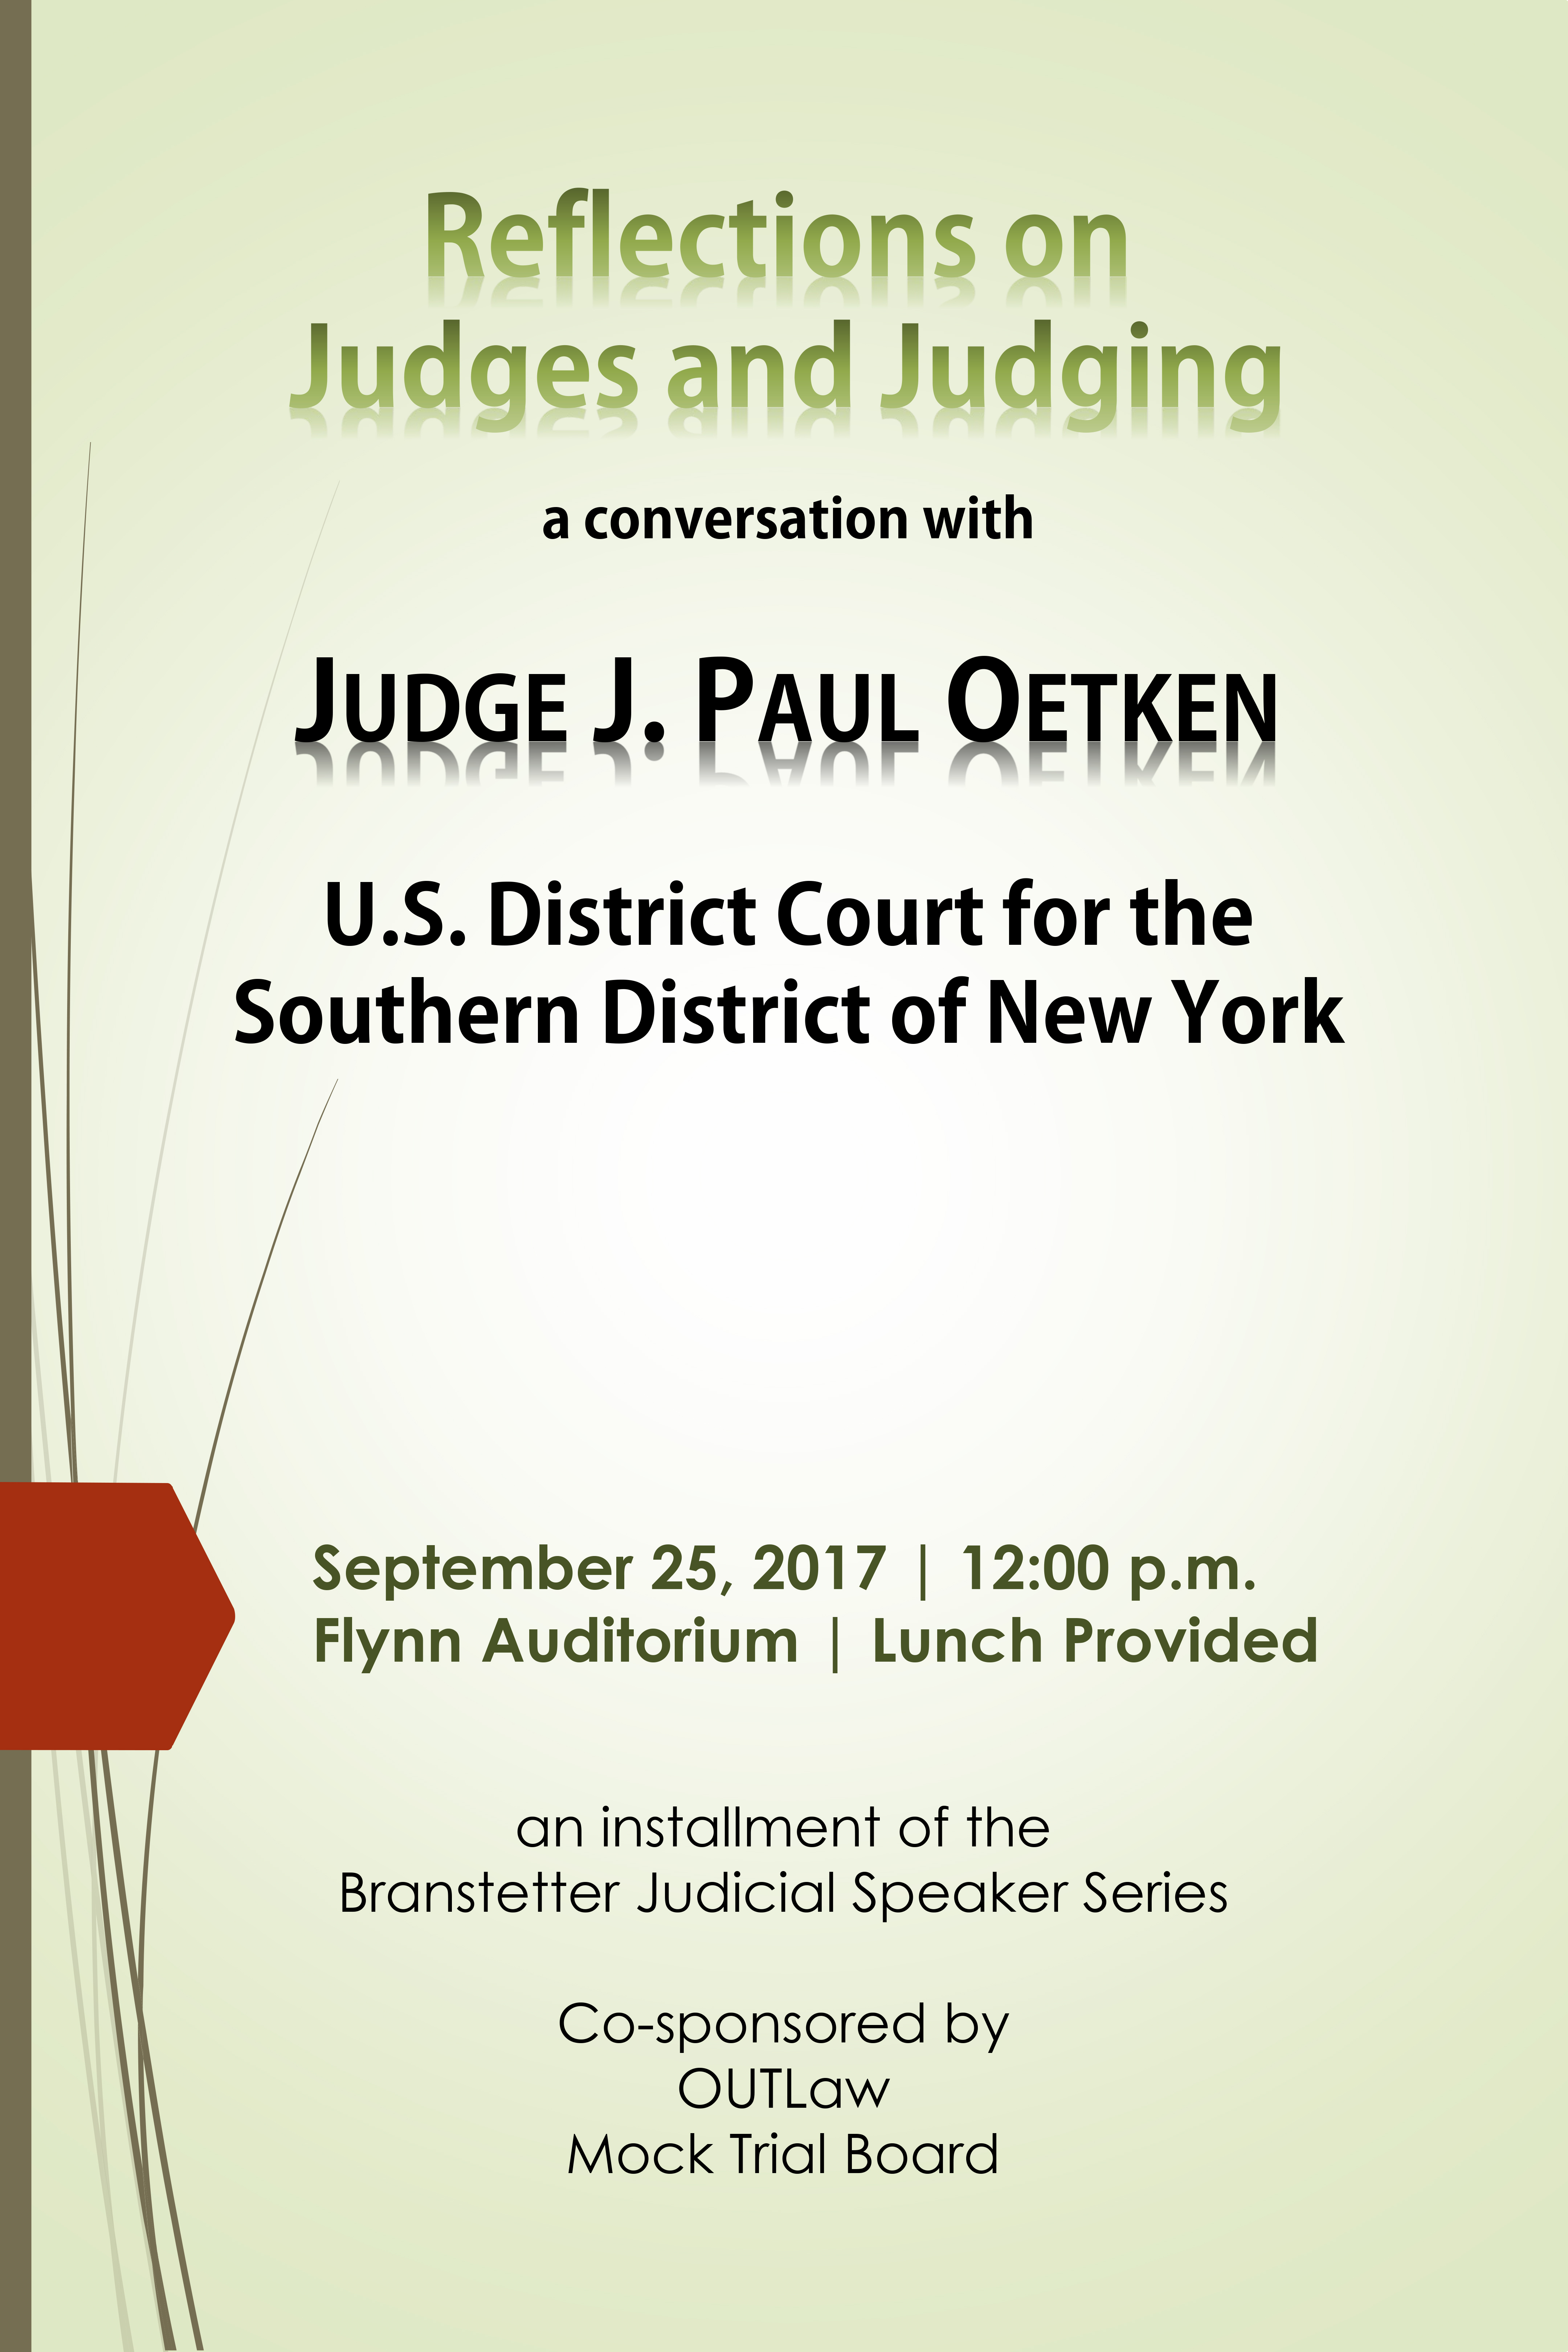 Judge Oetken poster image